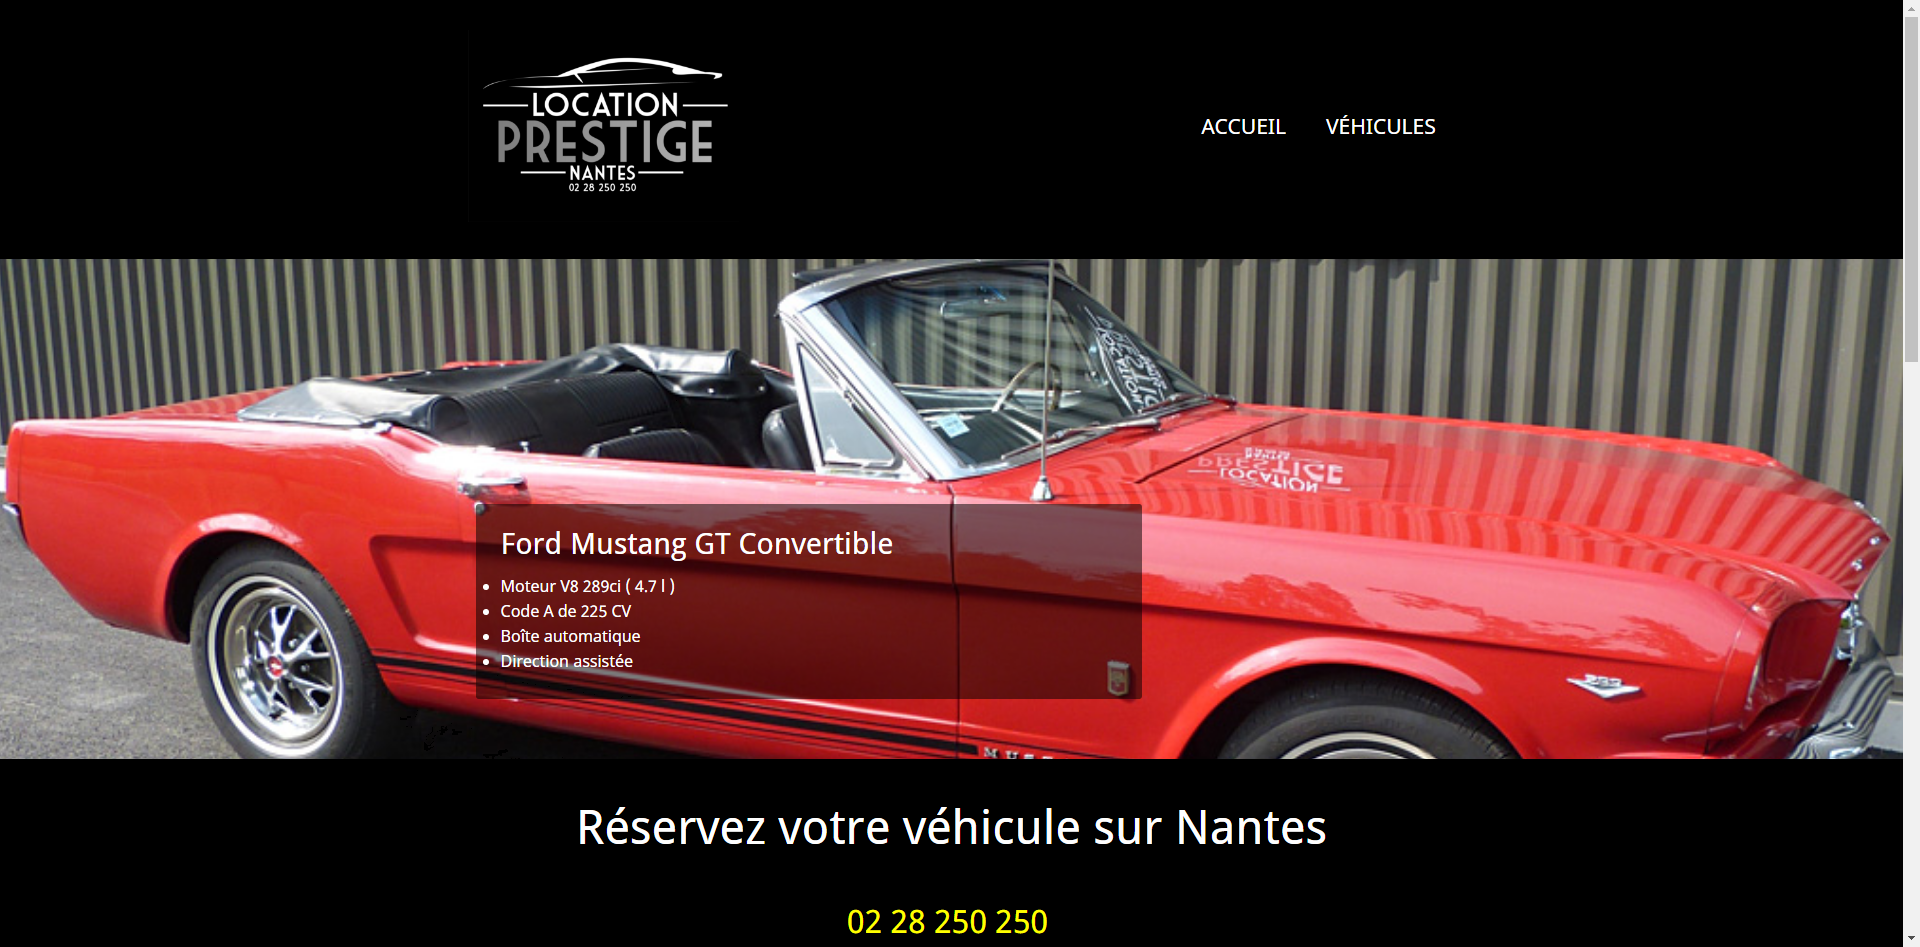 Site Internet Location Prestige Nantes